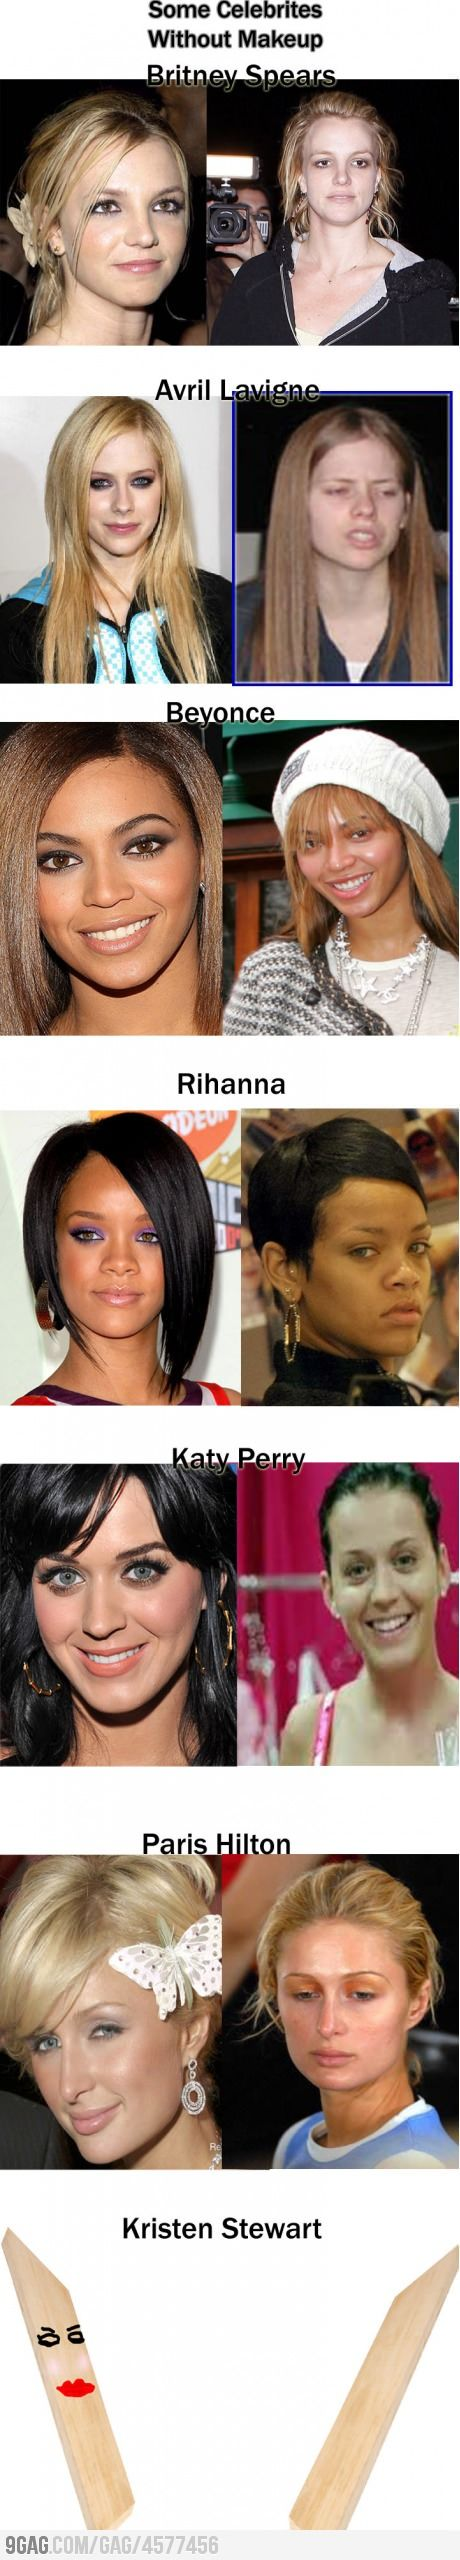 Some Celebrities Without Makeup - ahaha I died at the end!